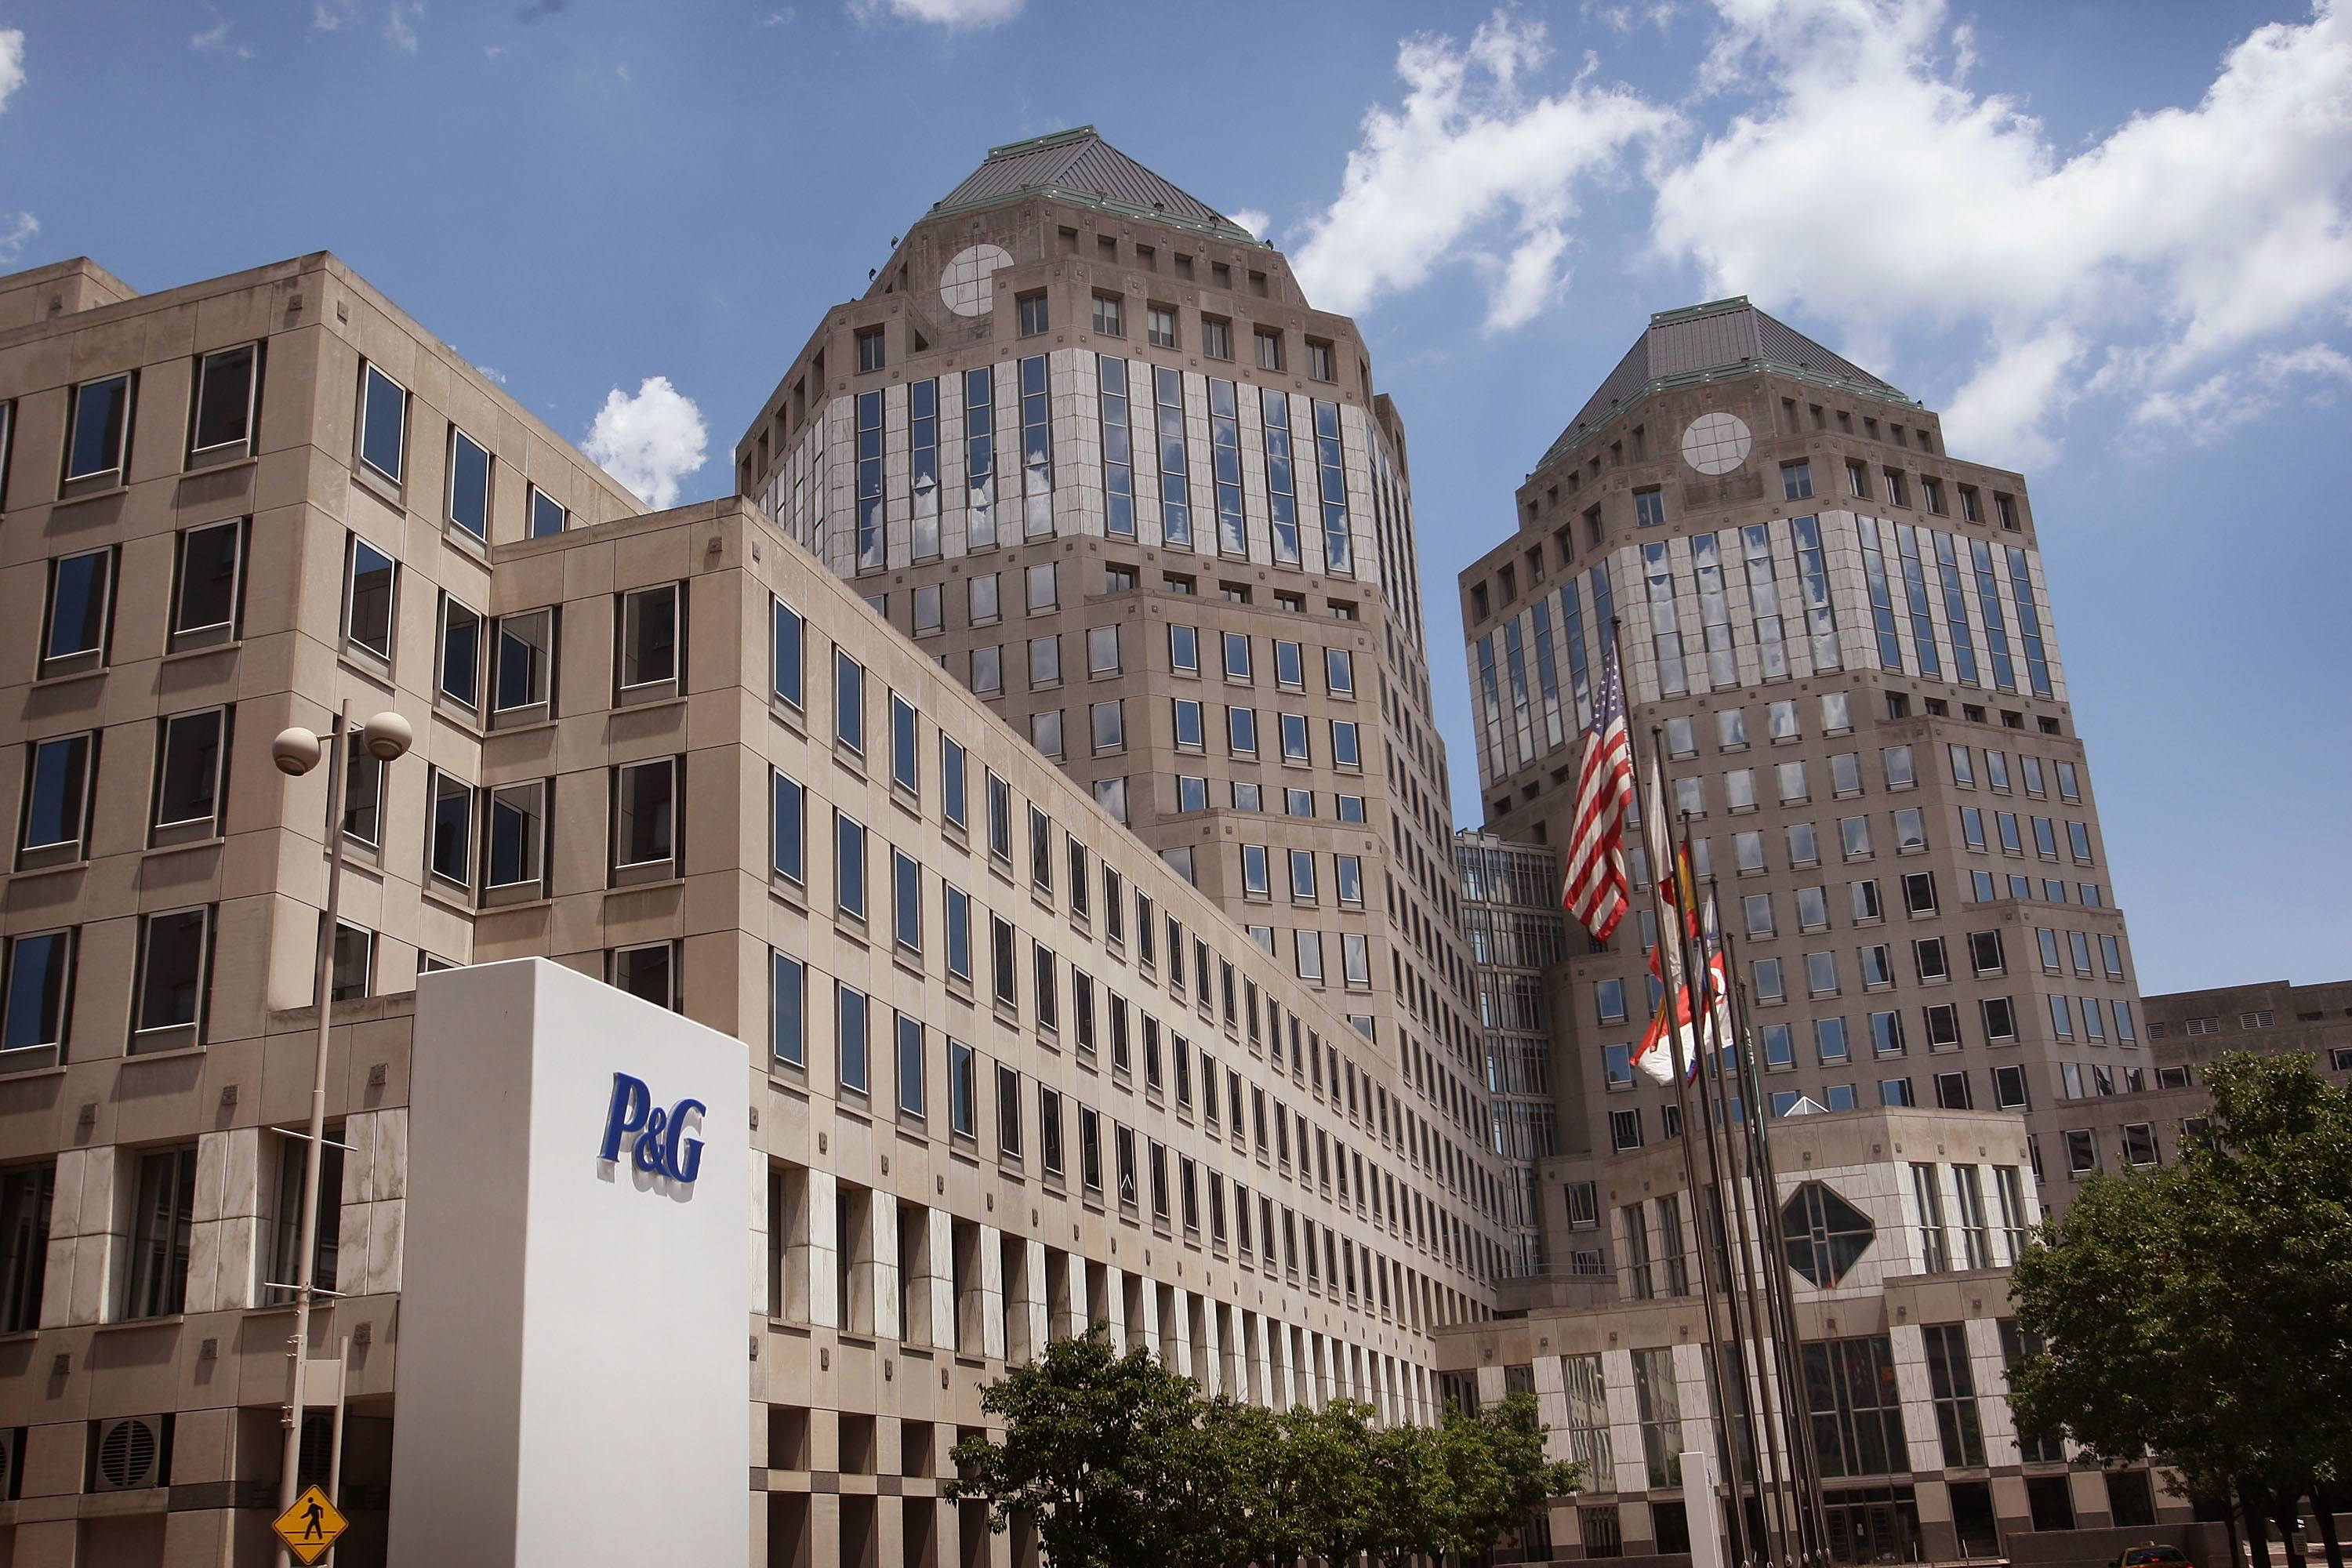 Procter & Gamble Co. Corporate Headquarters